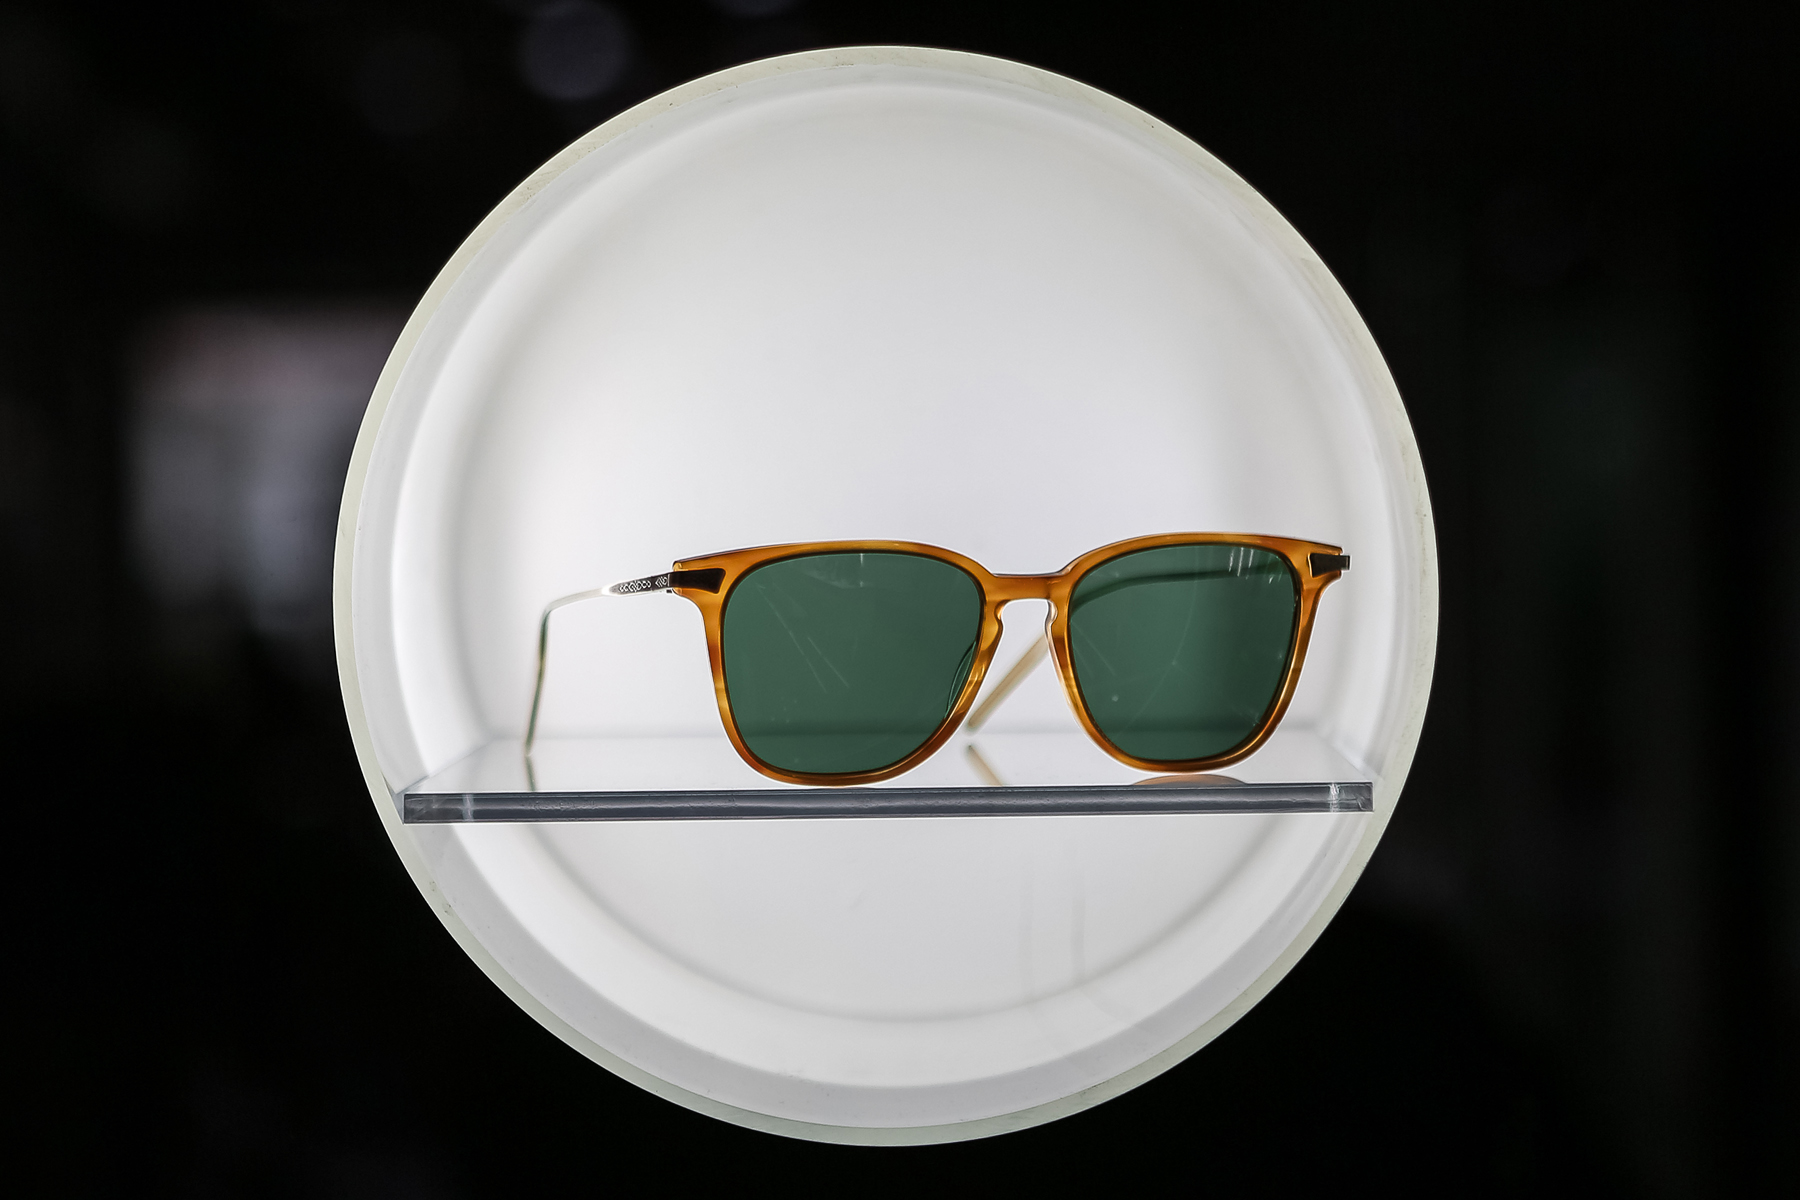 910b891df7 Fit Glasses To Face Online